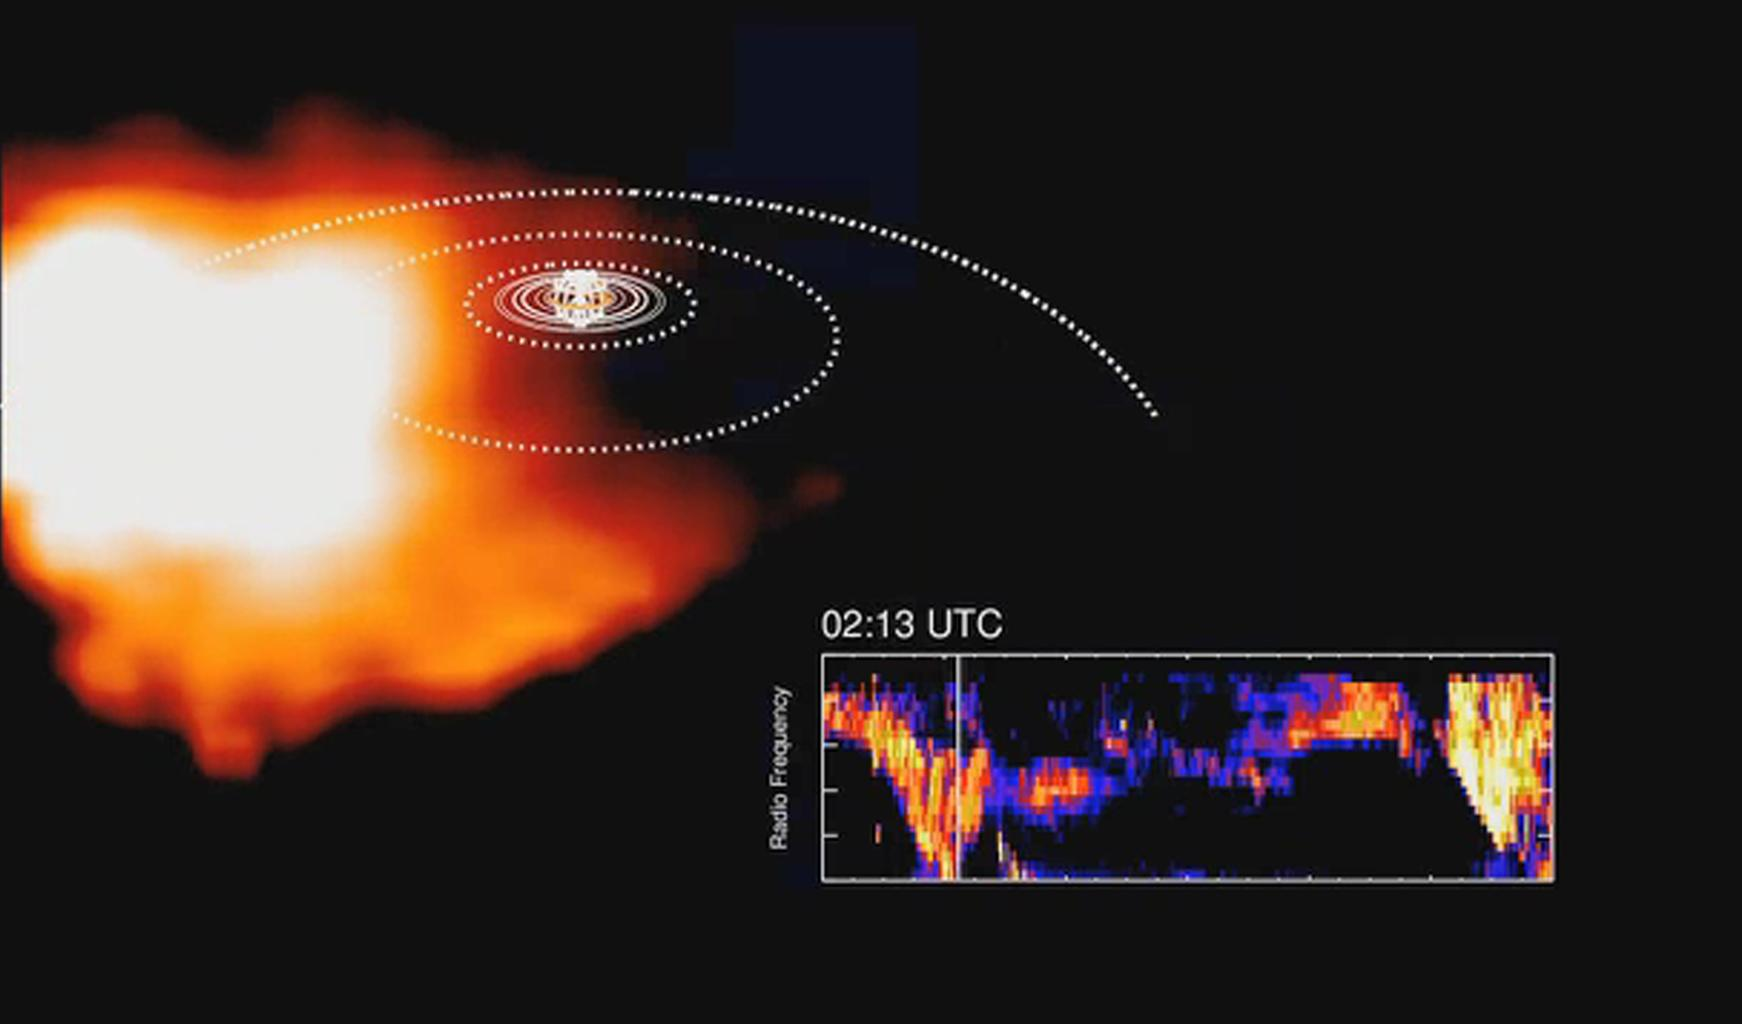 This frame from an animation, derived from data obtained by NASA's Cassini spacecraft, shows how plasma swirling around Saturn is correlated to bursts of radio waves emanating from the planet.